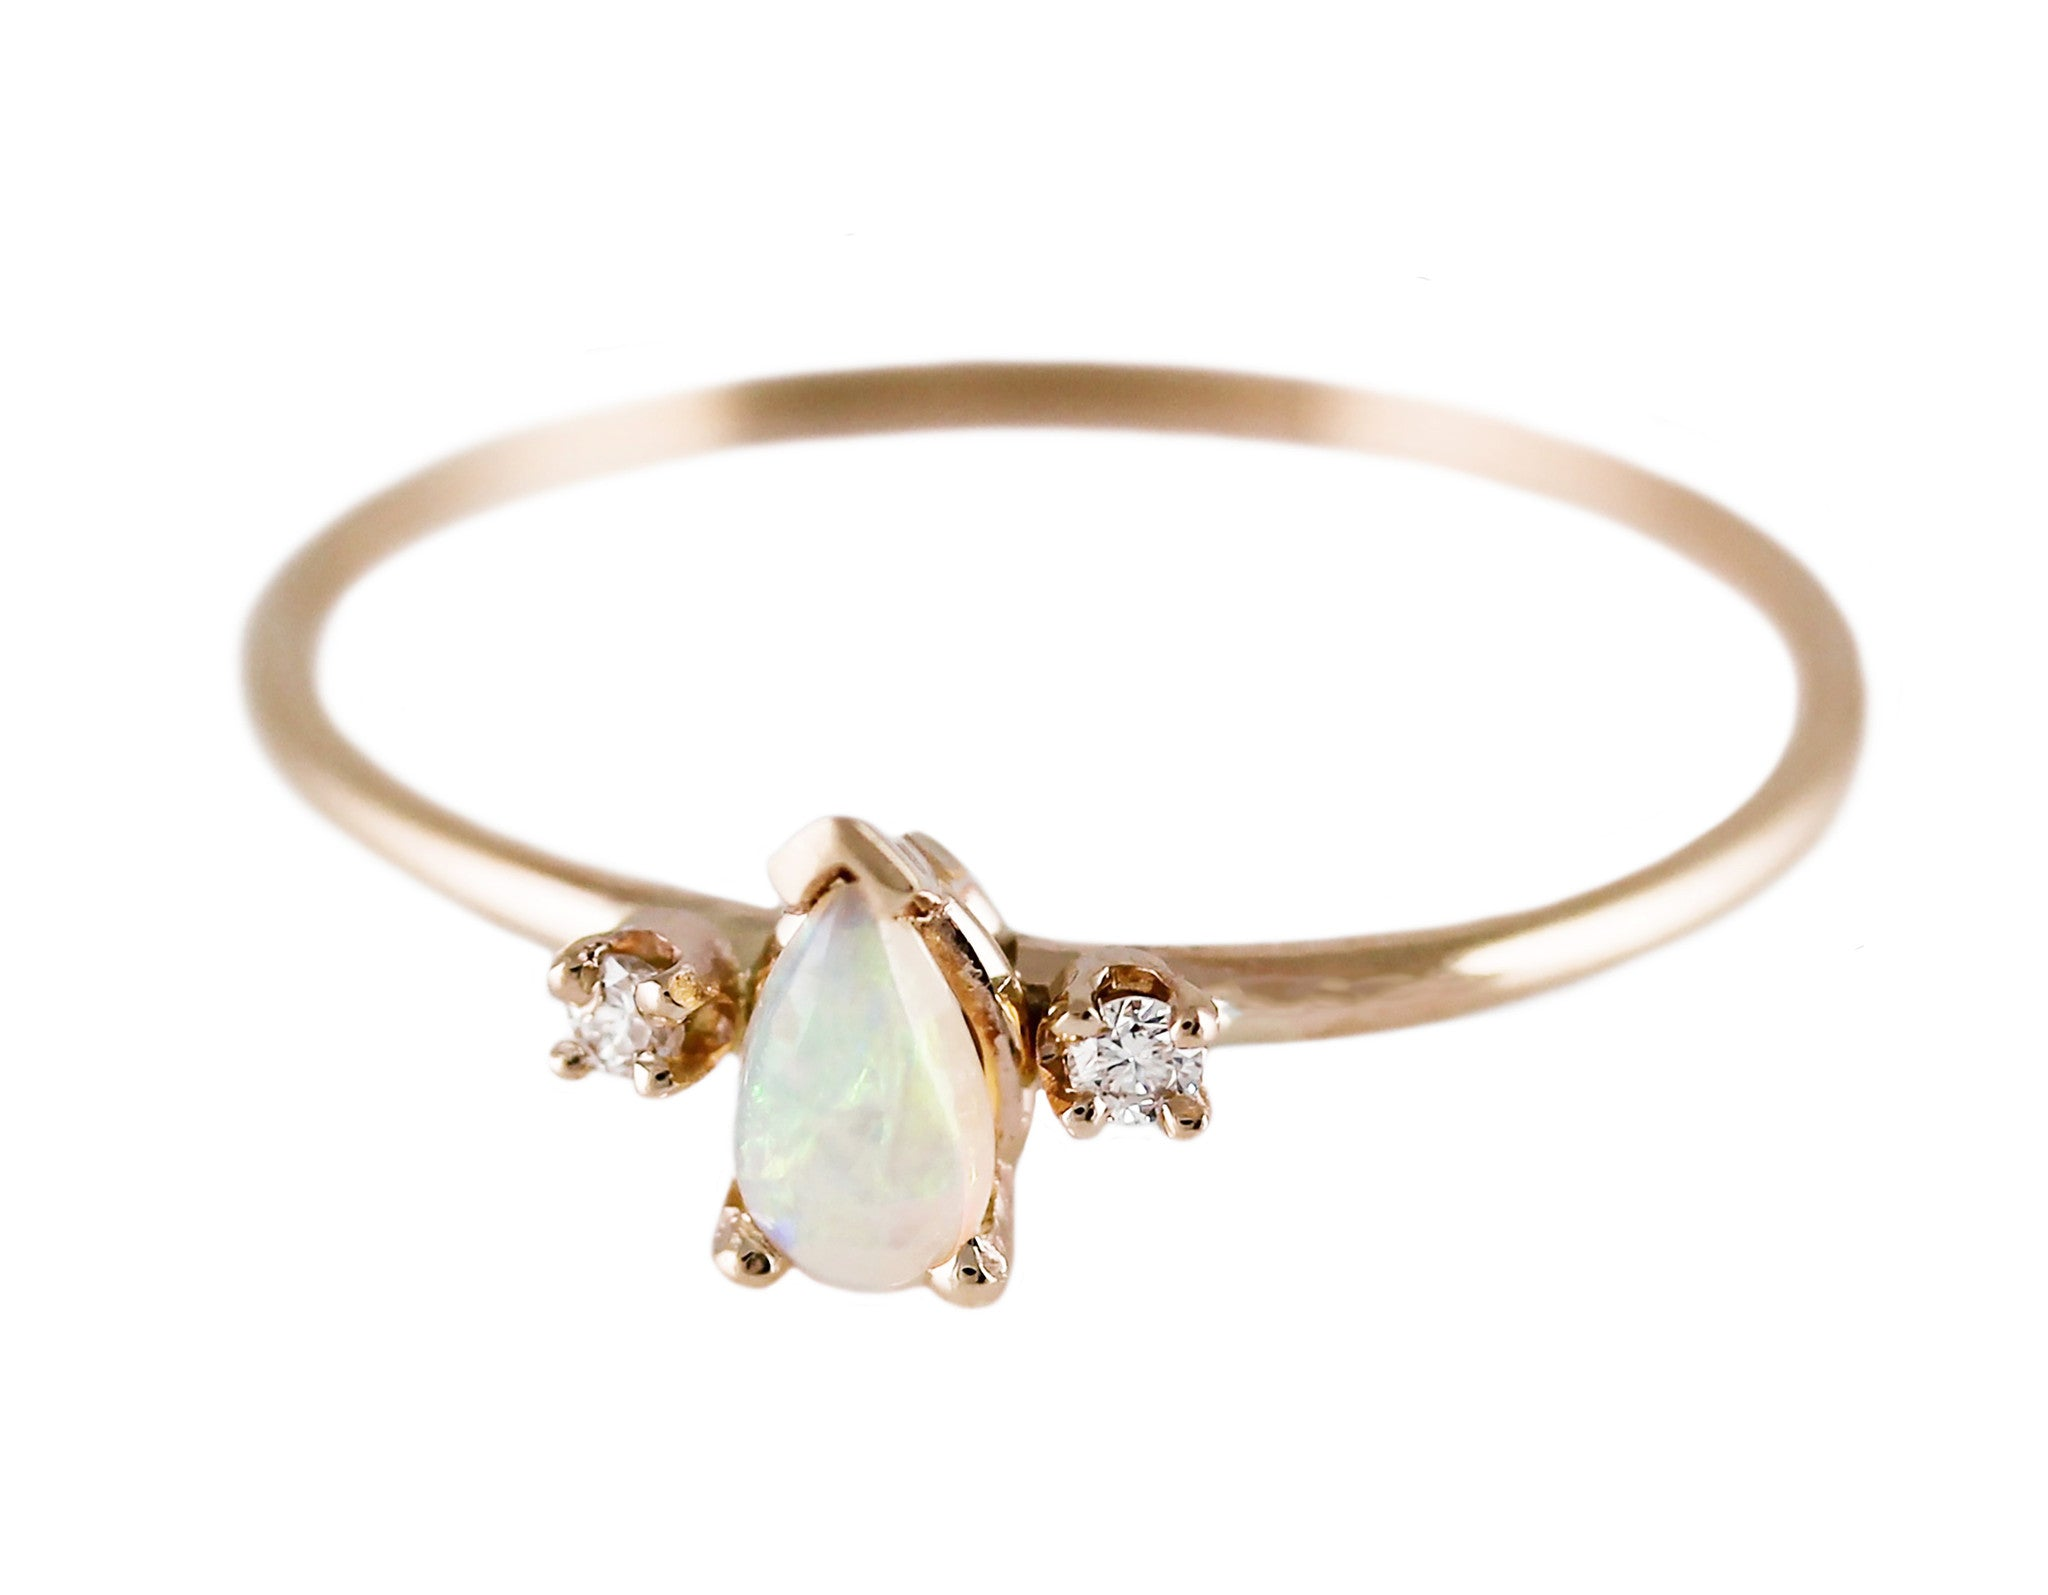 PRINCESS OPAL WITH DIAMONDS RING